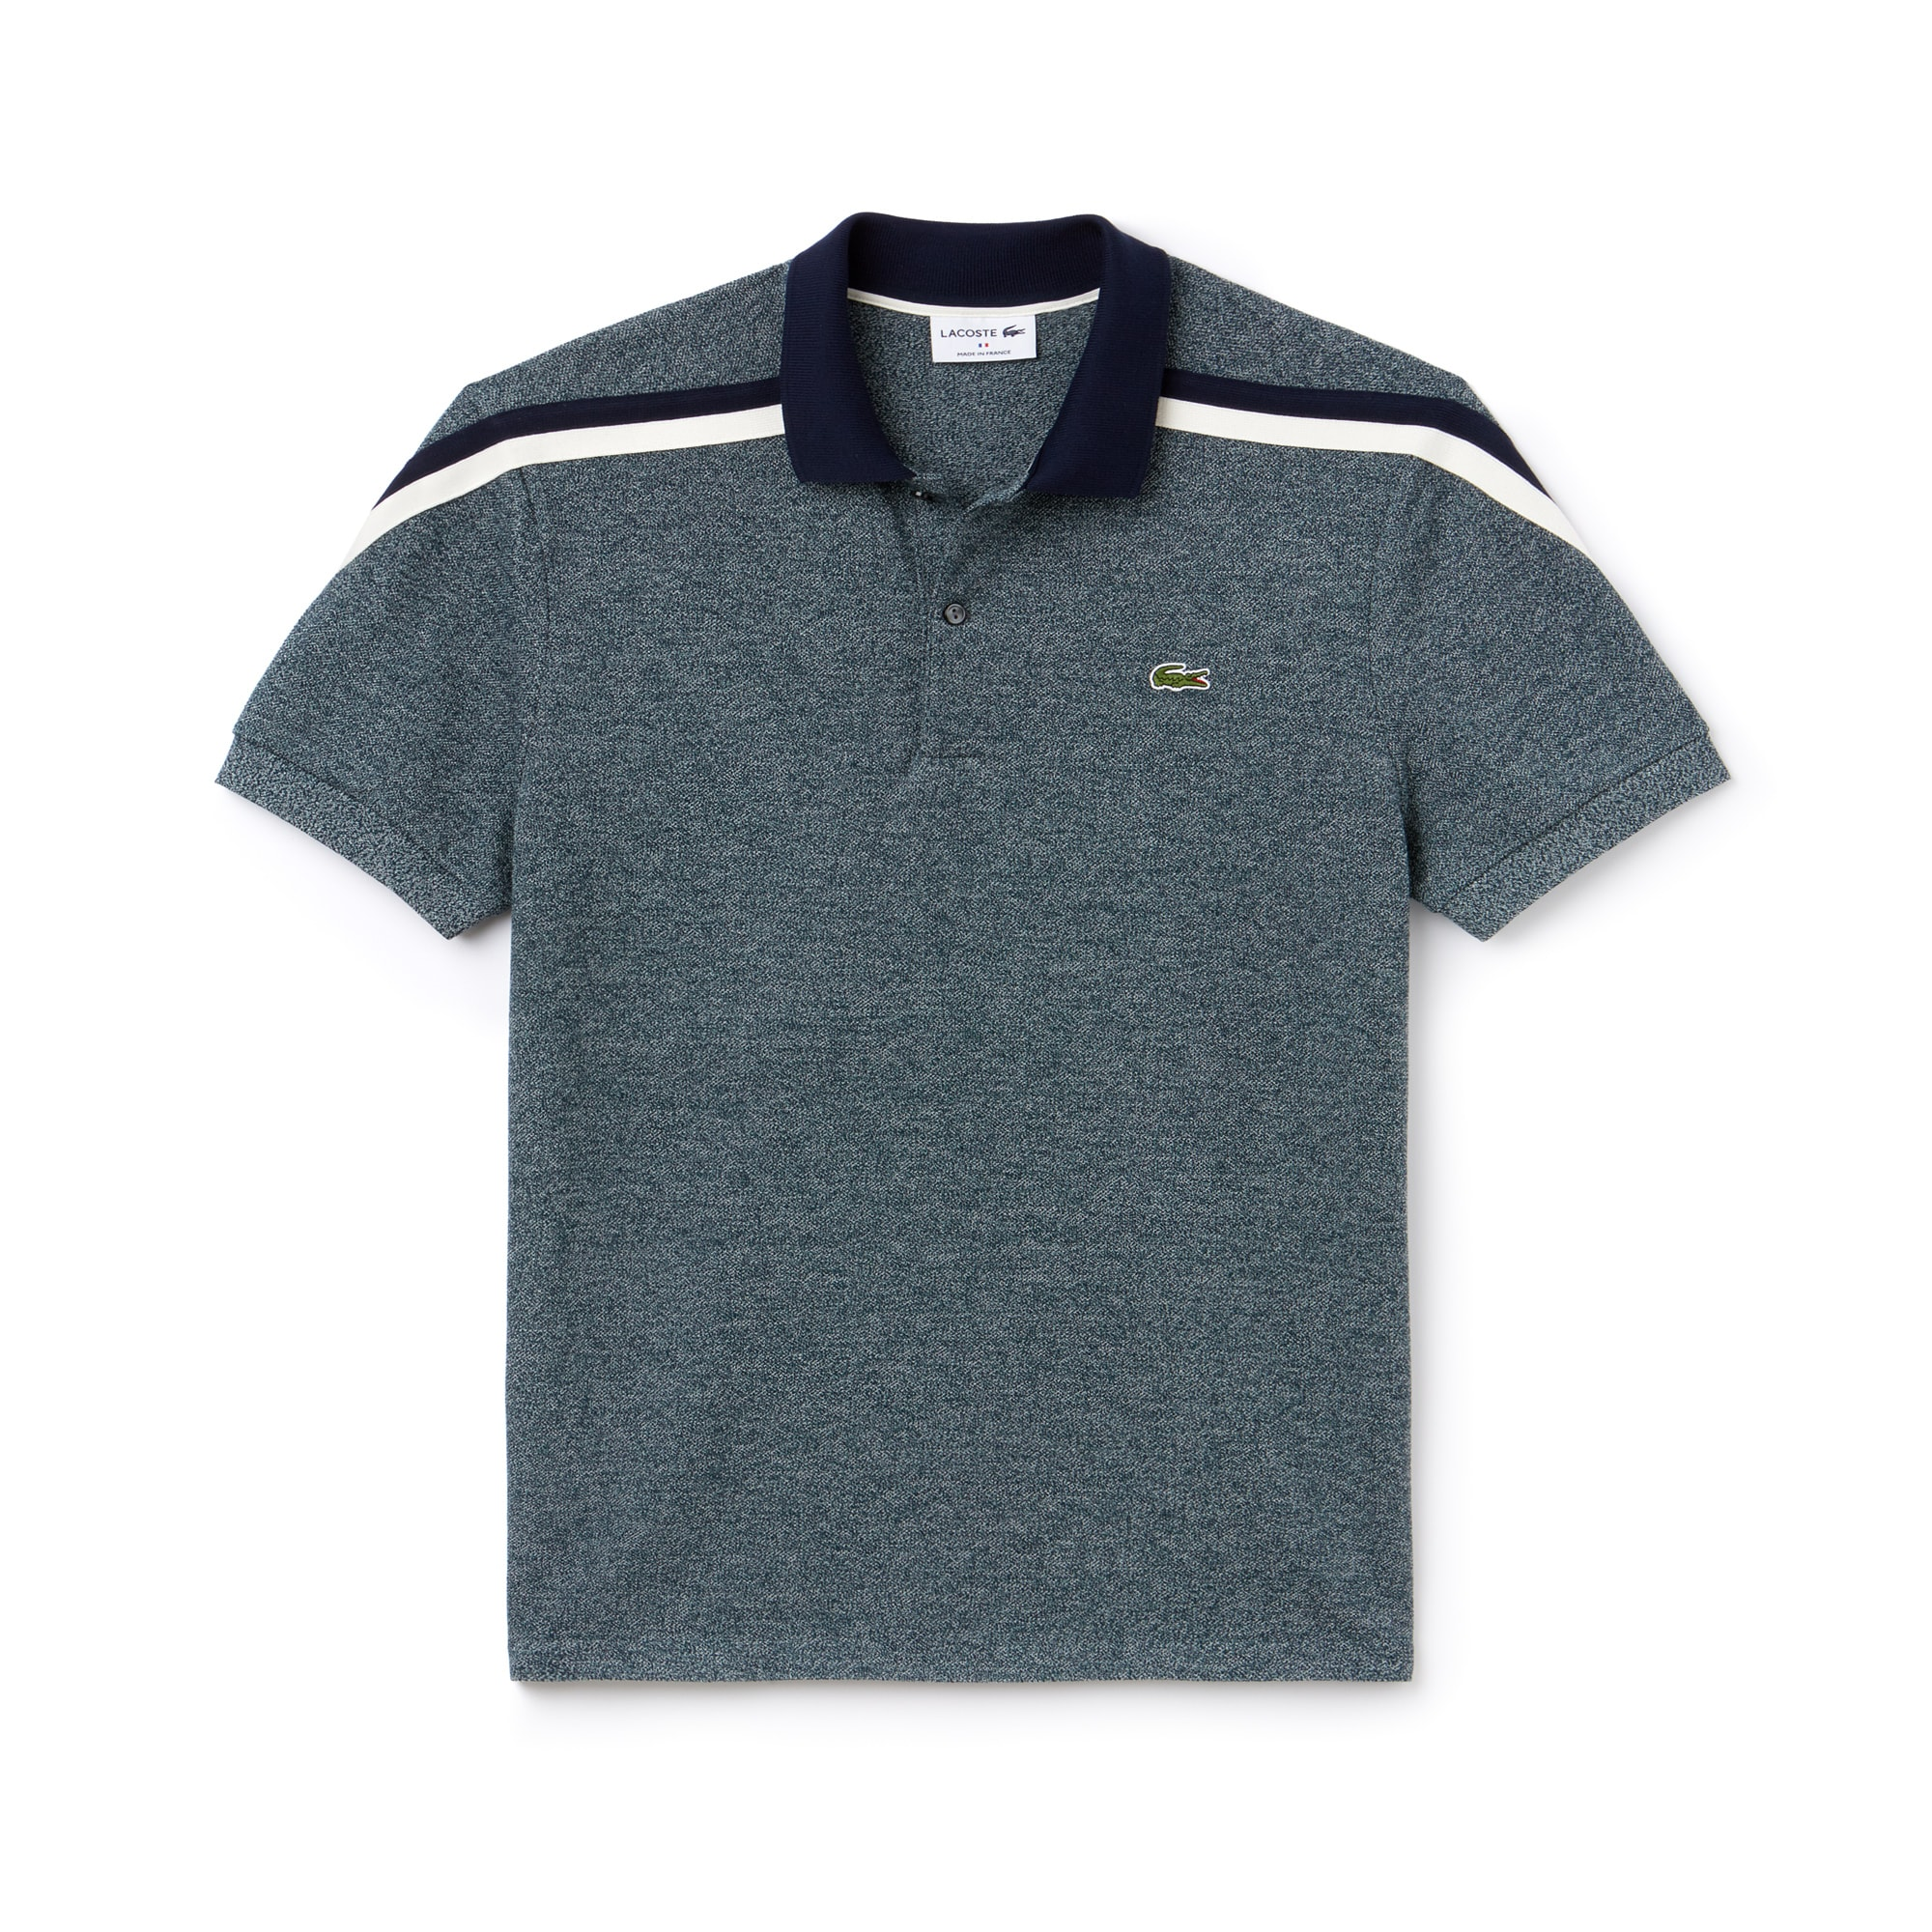 Men's Lacoste Made In France Regular Fit Cotton Piqué Polo